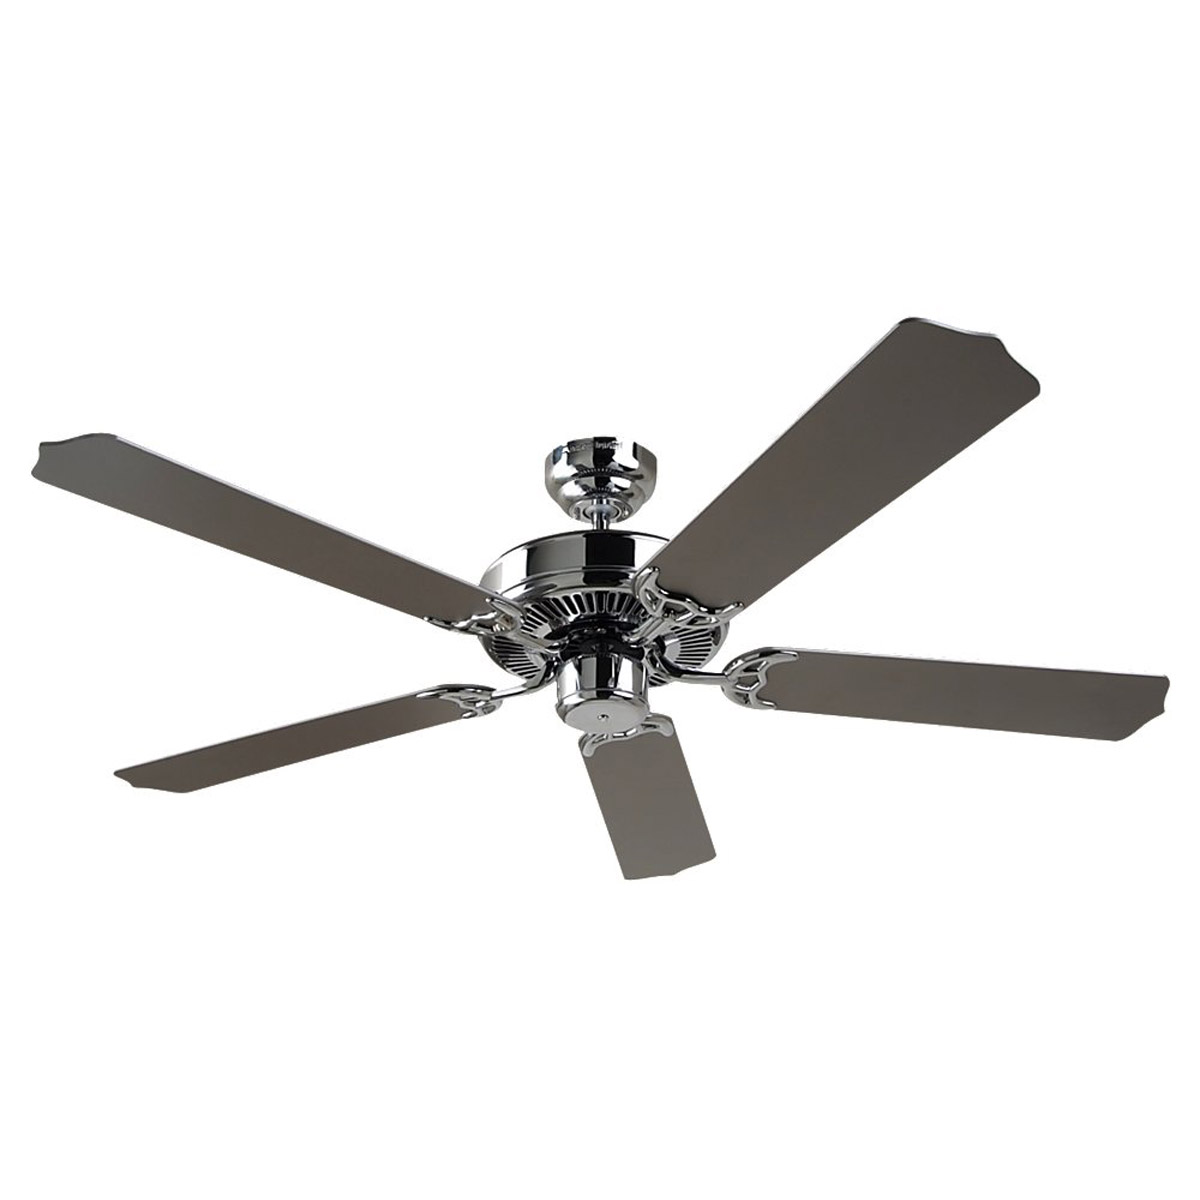 Sea Gull Lighting Quality Max & Energy Star 52in Ceiling Fan in Chrome 15030-05 photo